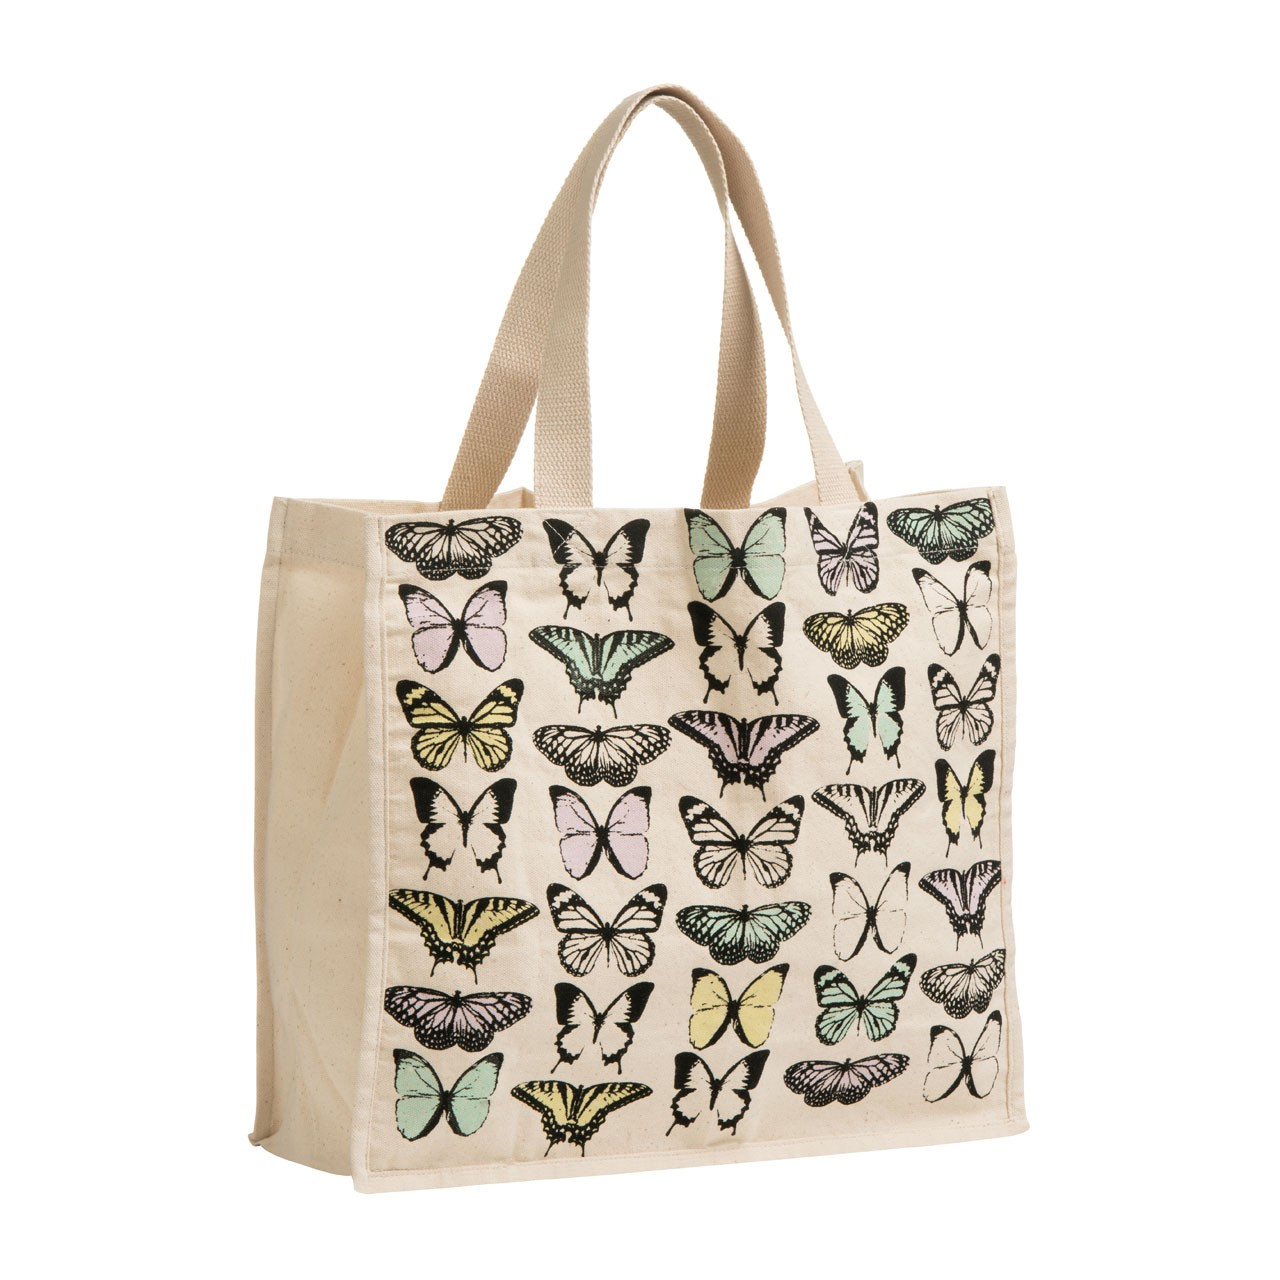 Butterfly Shopping Bag Cotton Canvas